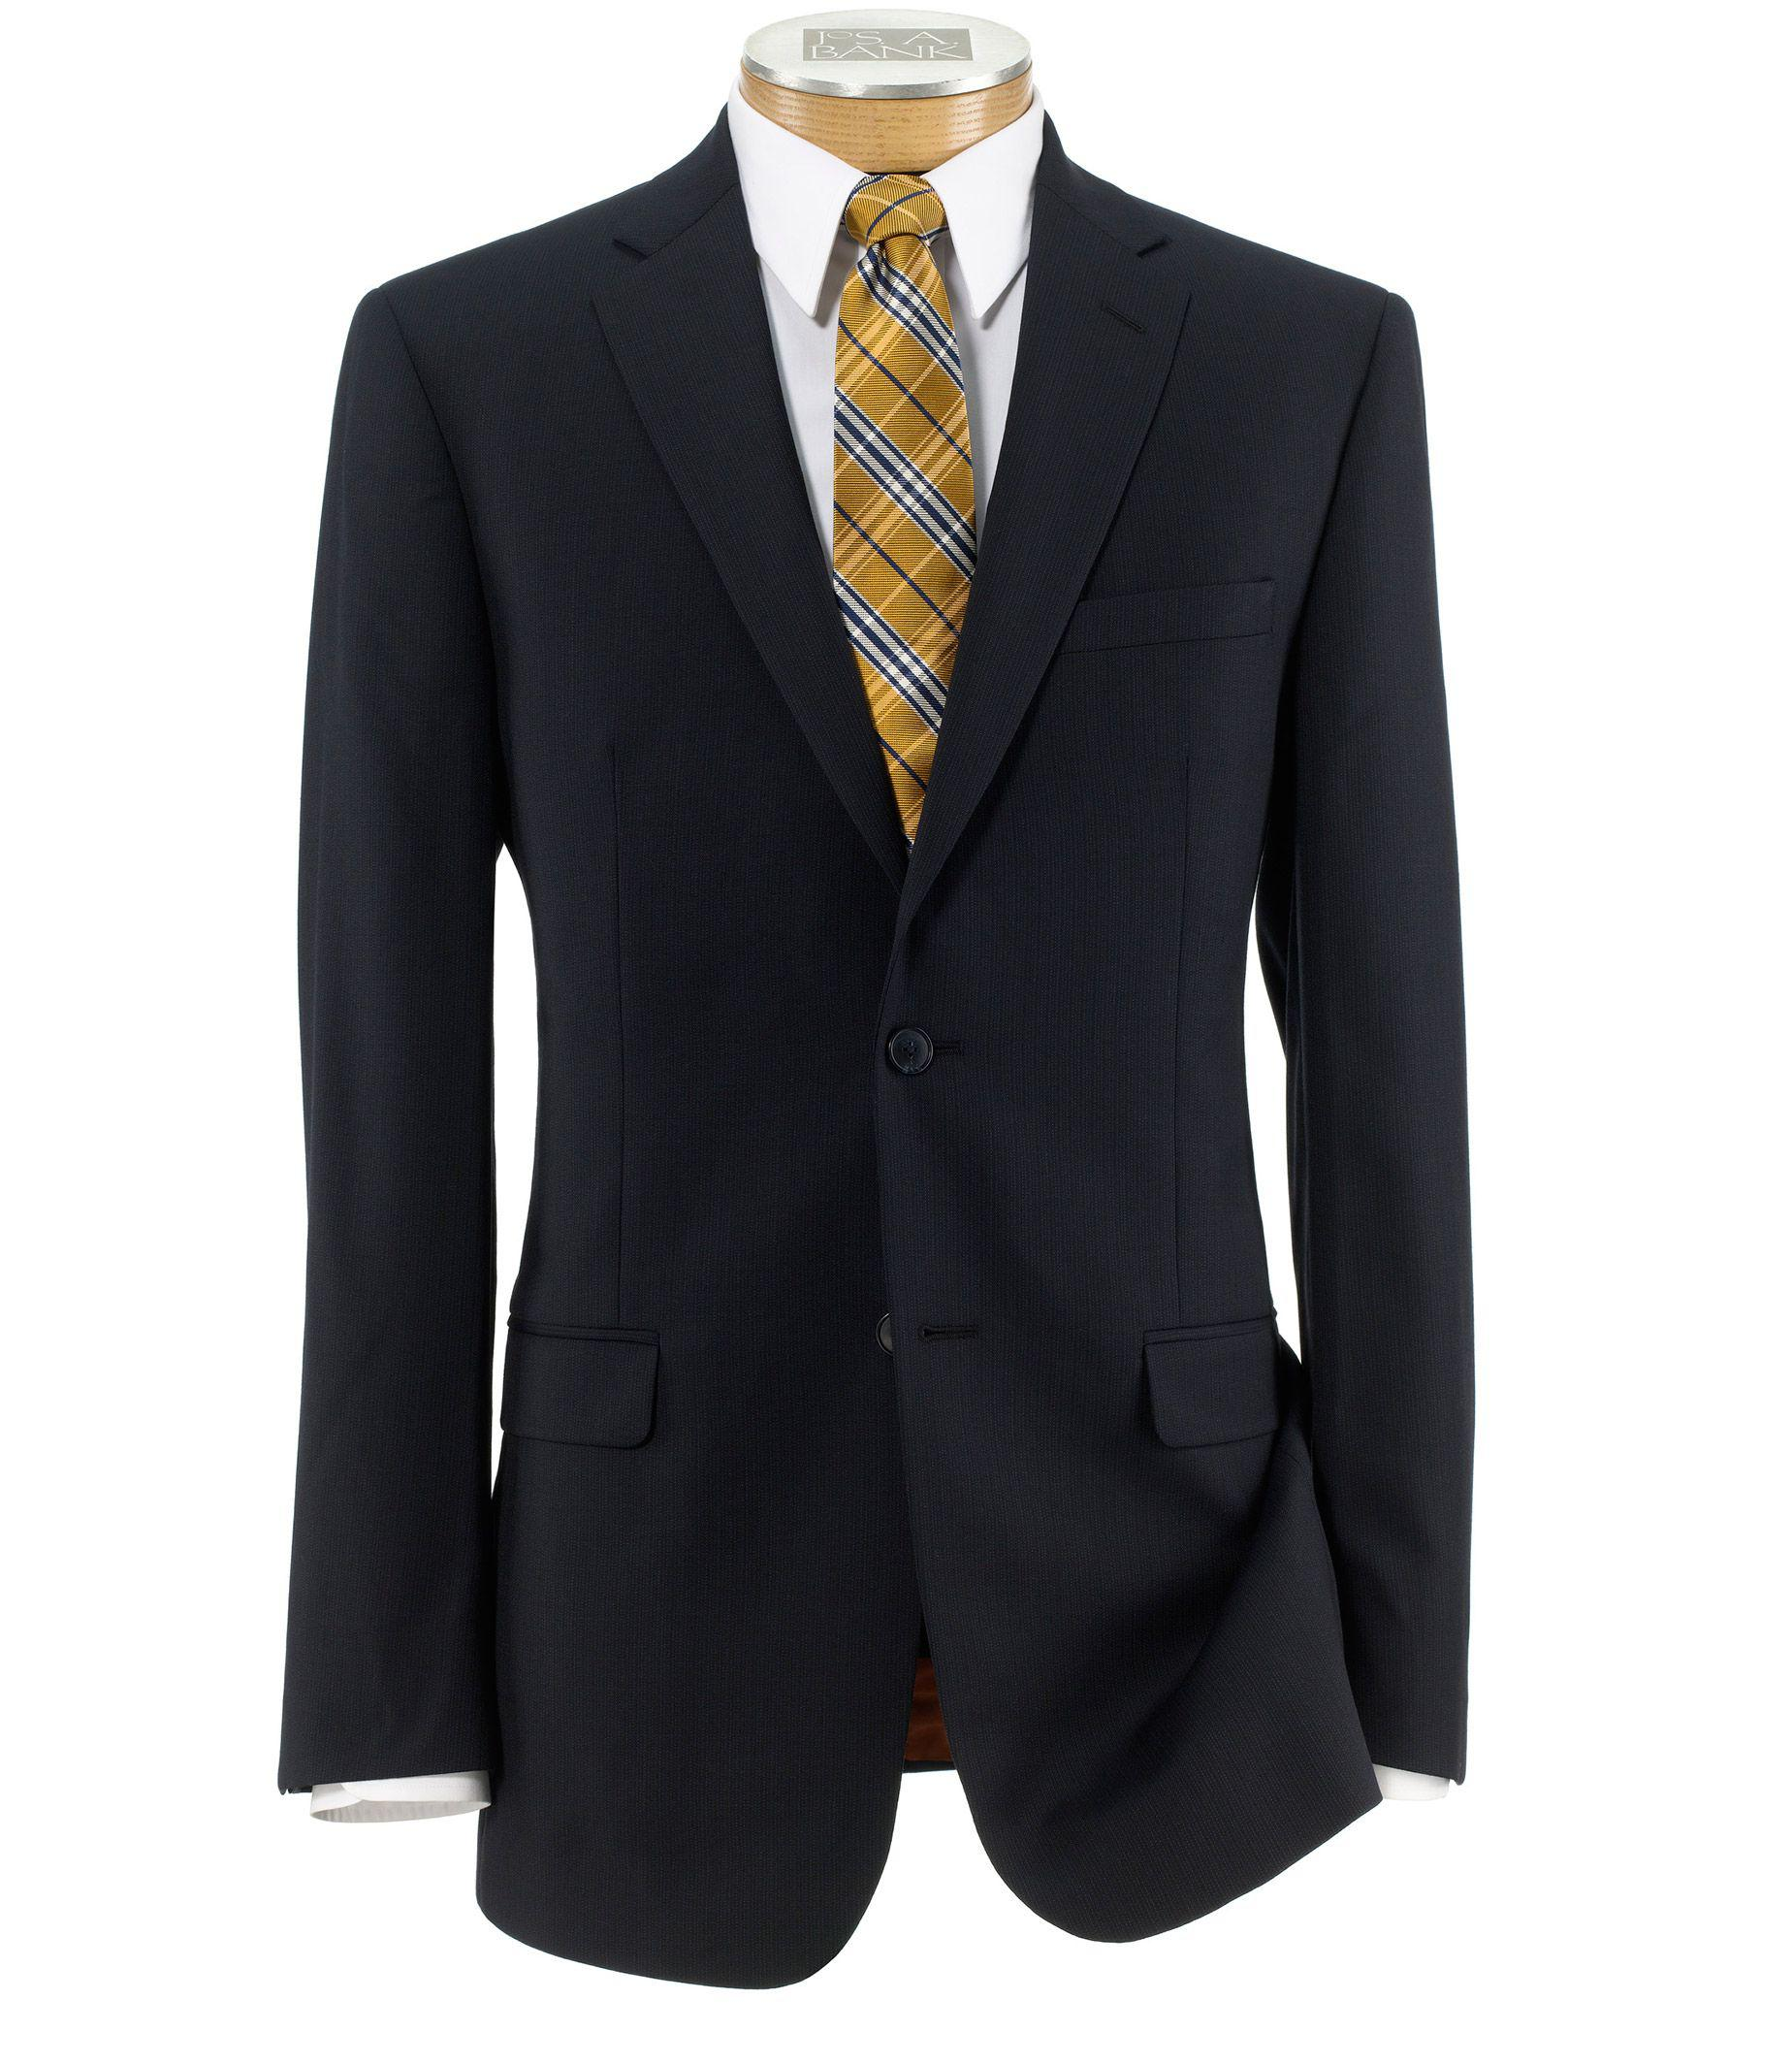 Jos a bank joseph slim fit 2 button suits with plain for Jos a bank tailored fit vs slim fit shirts